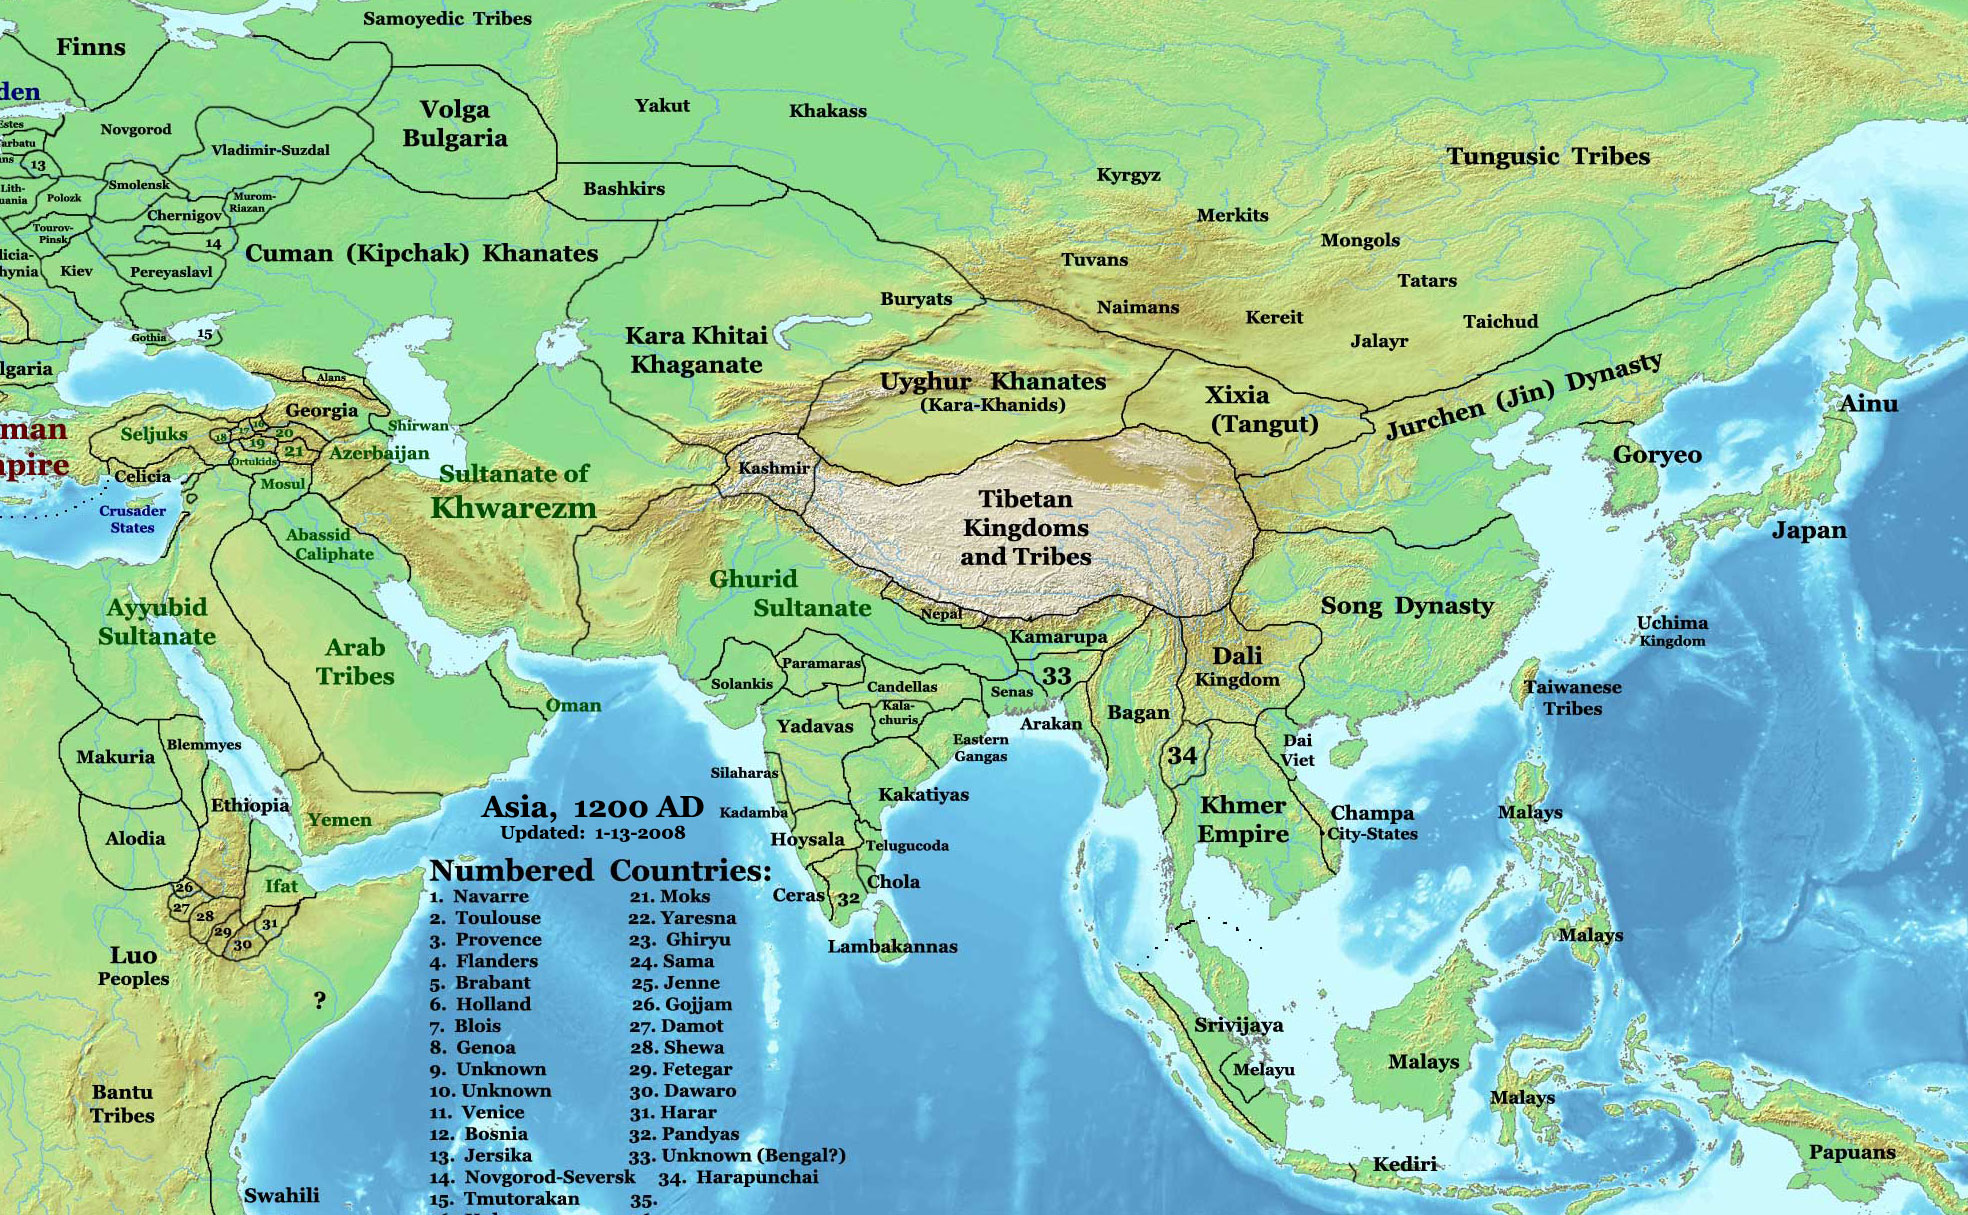 6e832e4eaa8 Map of Asia in 1200 CE. Paramara kingdom is shown in central India.